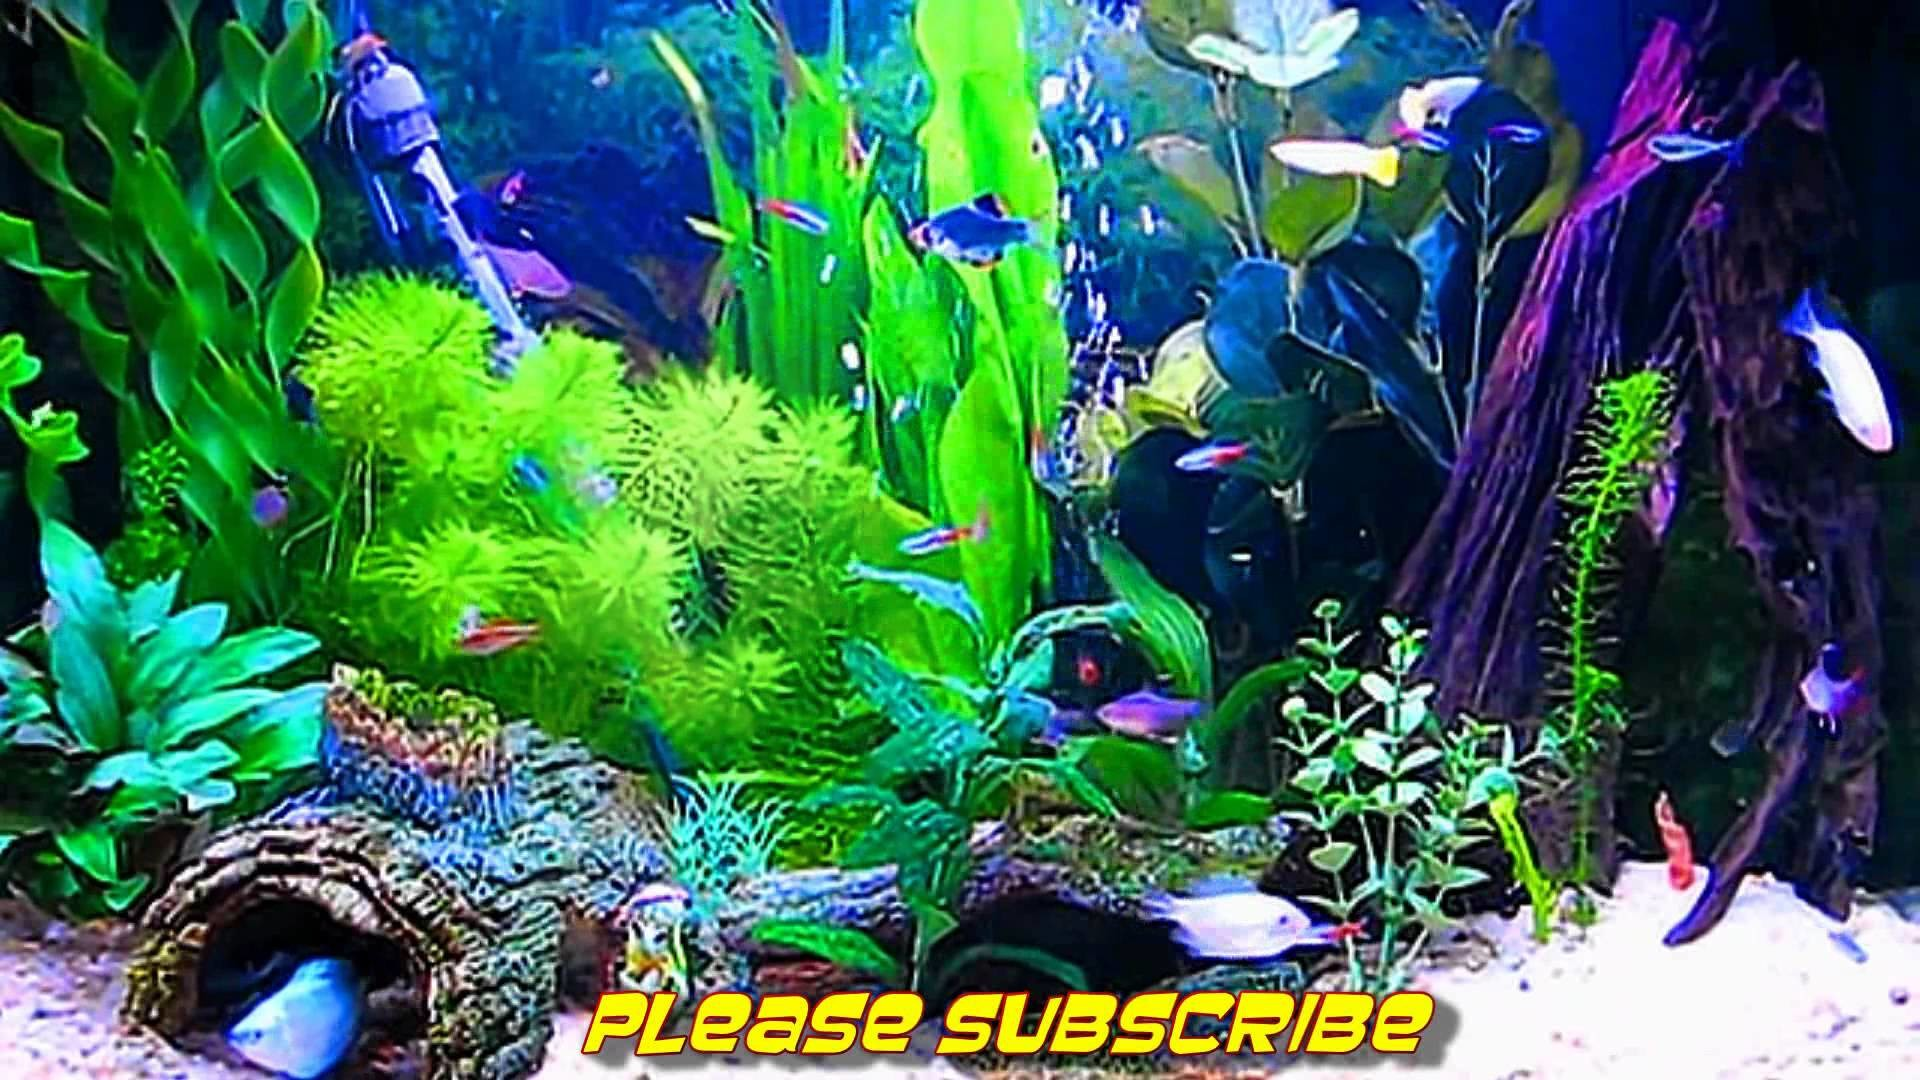 ... live wallpaper wallpapersafari · Download · 1920x1080 Amazing HD Aquarium ScreenSaver (Free) Windows and Android - YouTube